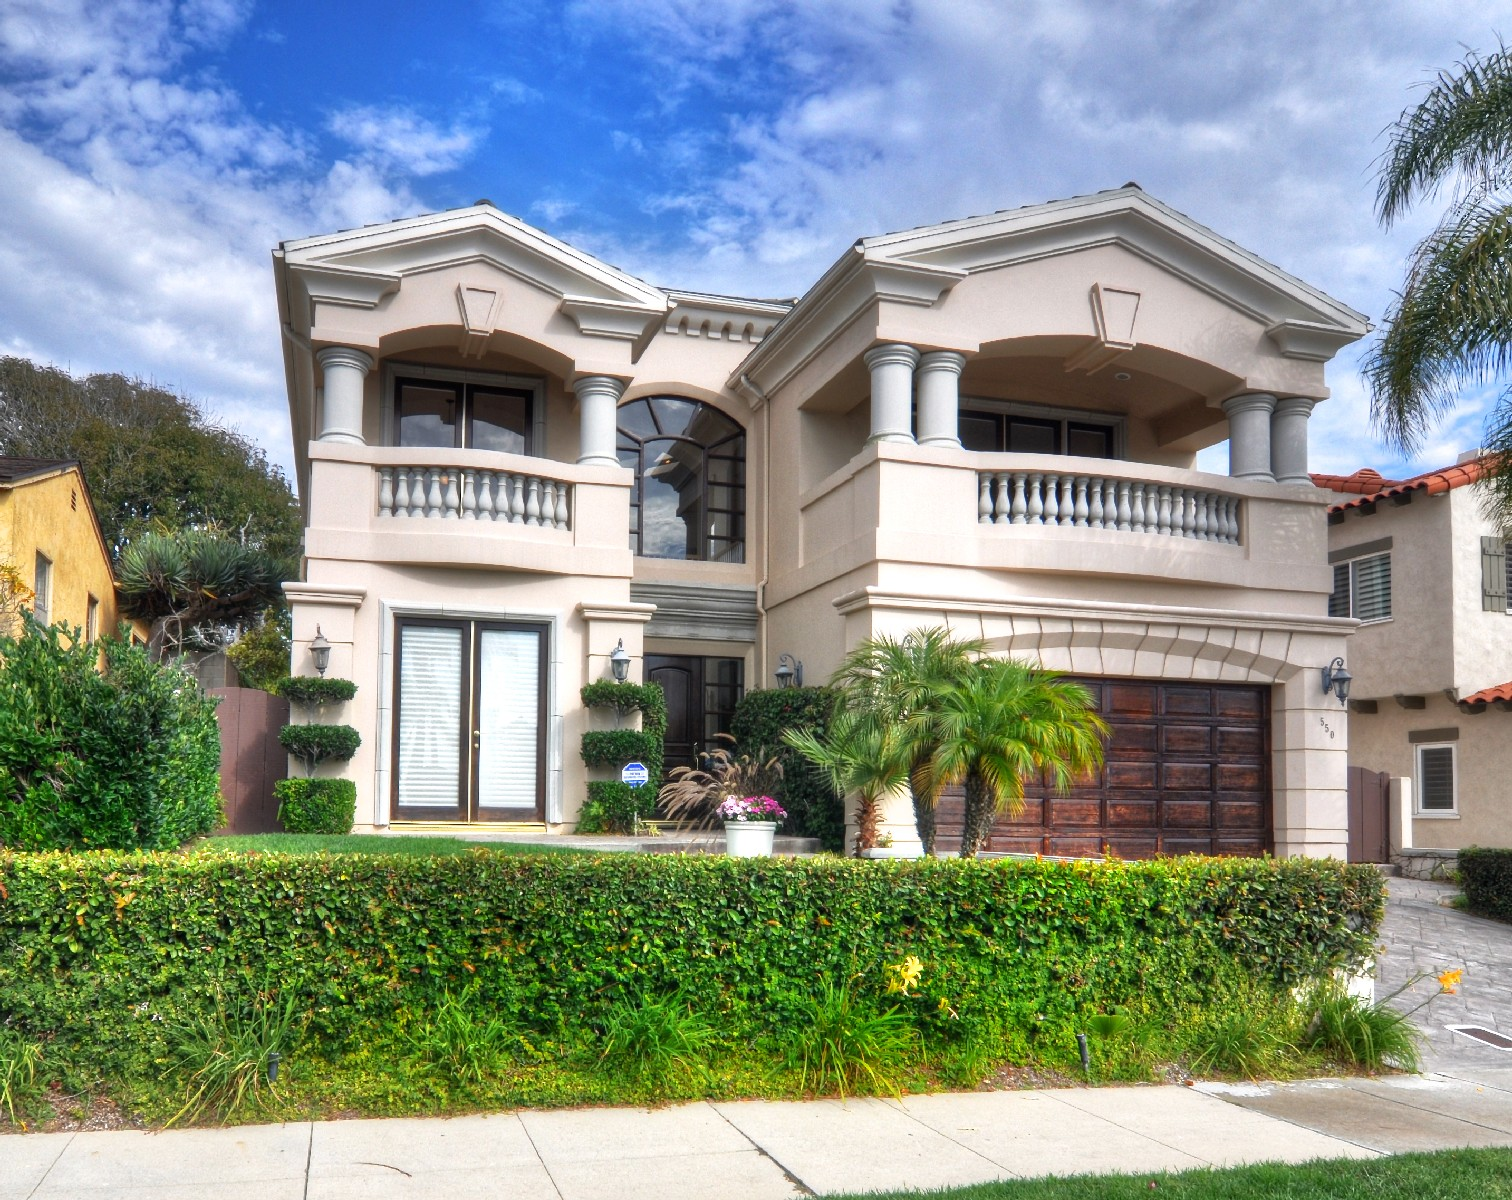 Single Family Home for Sale at 550 S Helberta Ave Redondo Beach, California 90277 United States